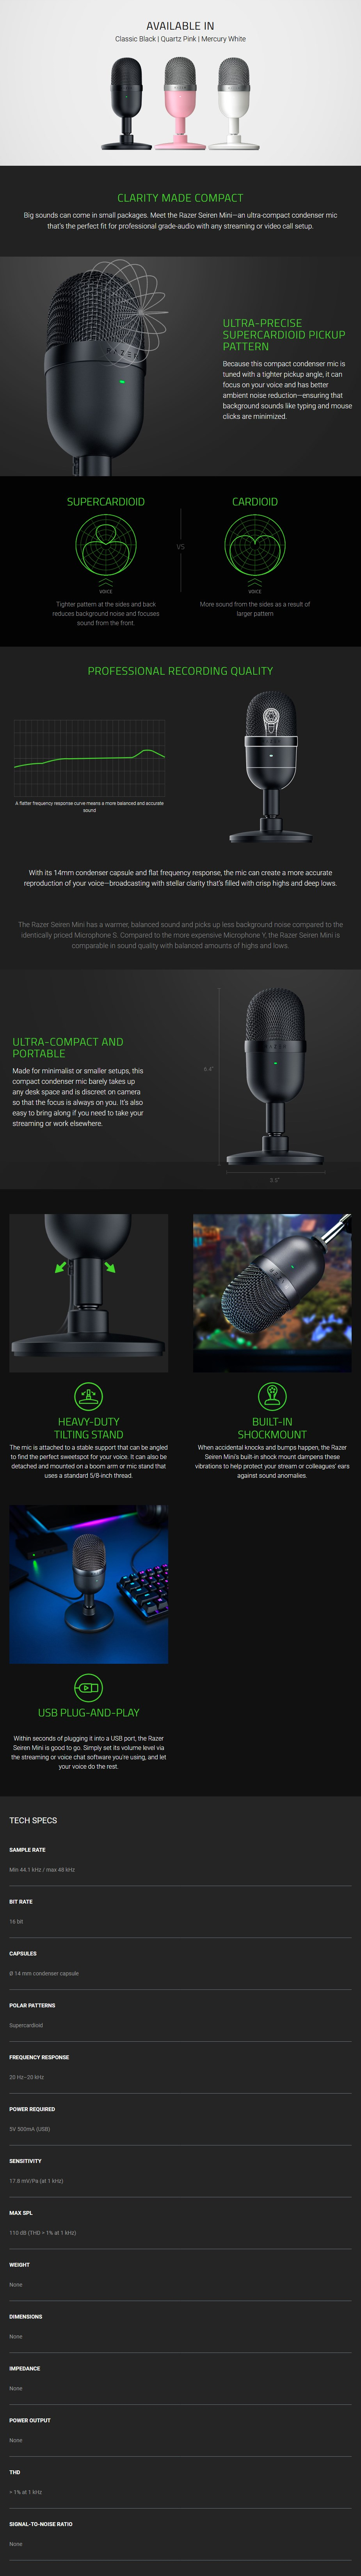 razer-seiren-mini-ultracompact-condenser-microphone-ac39608-1-1-.jpg